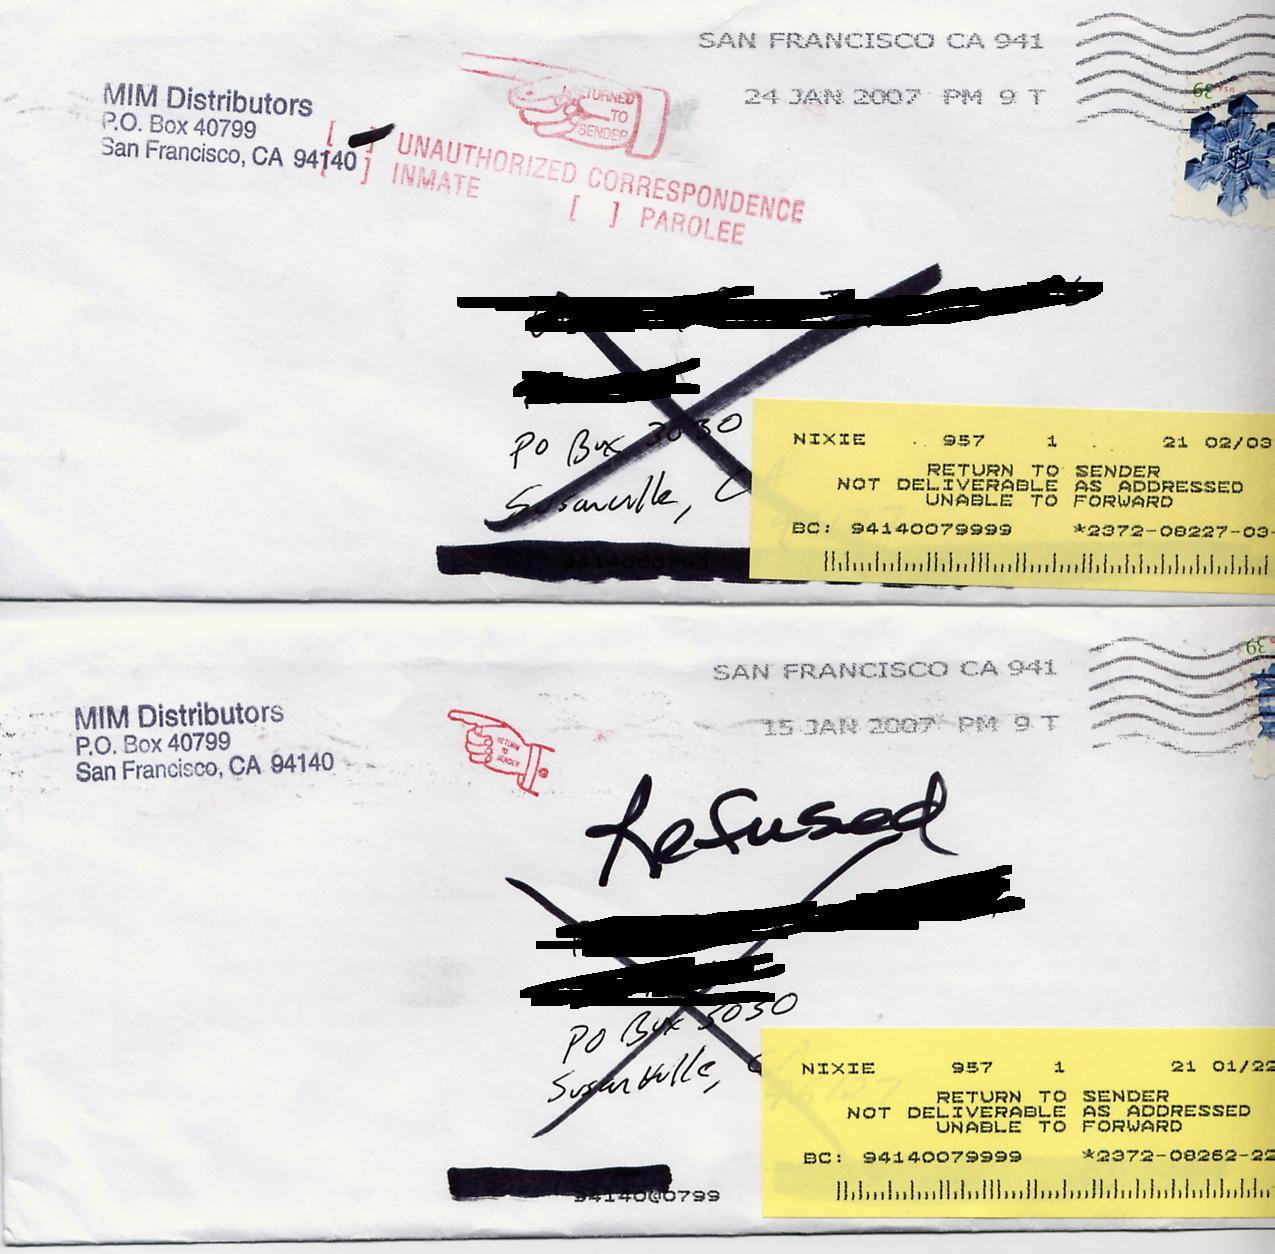 How To Address A Letter To An Inmate In California